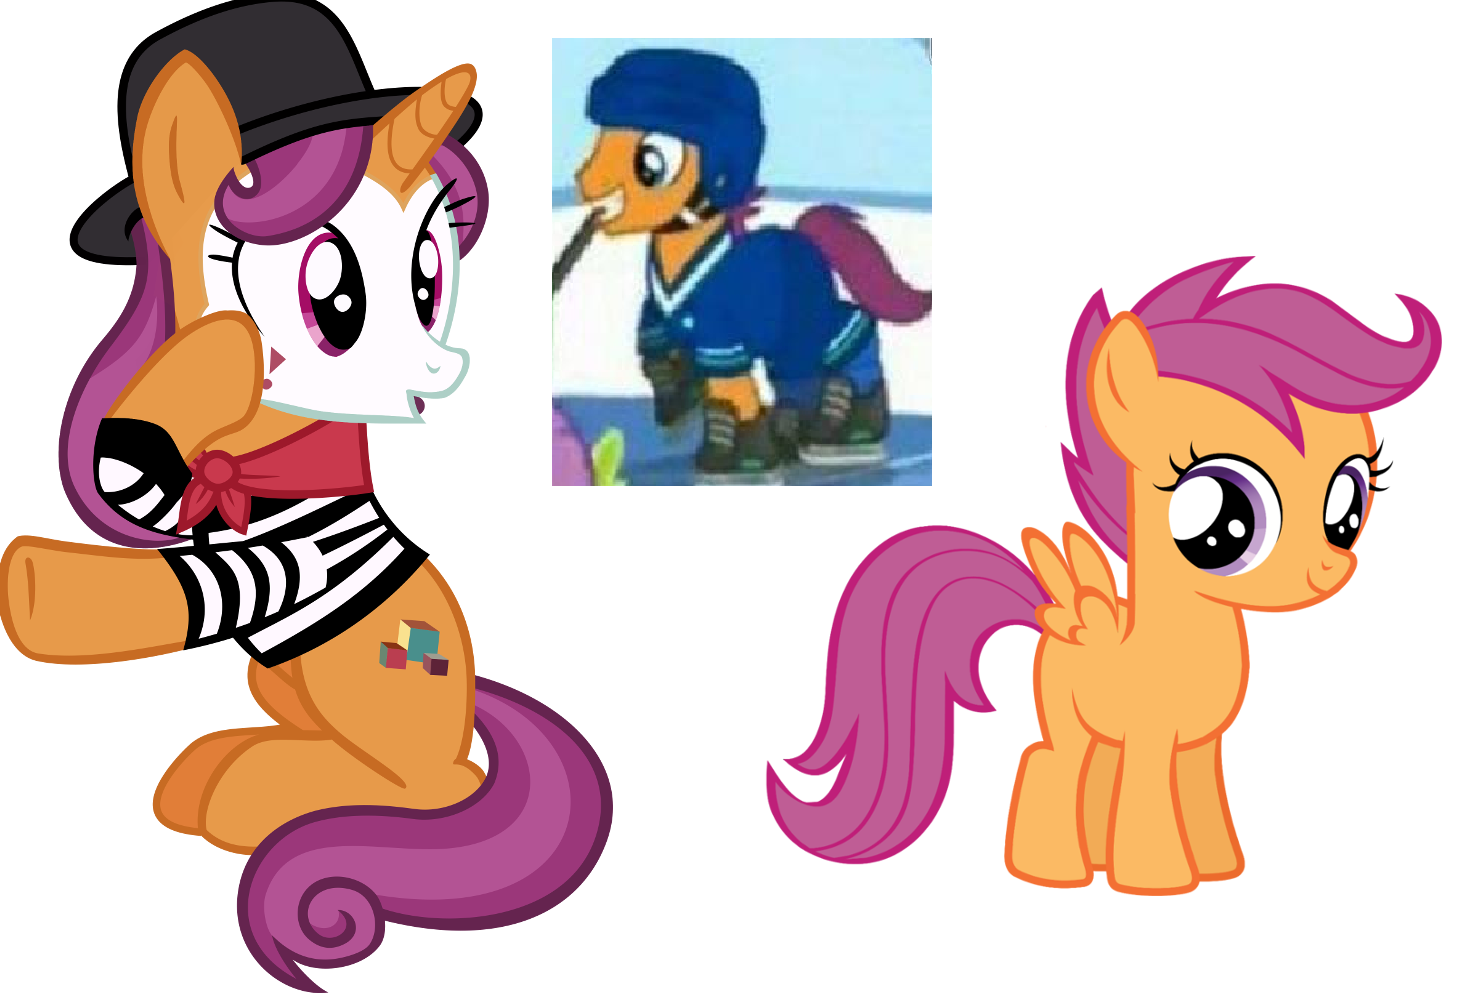 Scootaloo S Parents My Little Pony Friendship Is Magic Know Your Meme Scootaloo and her friends, apple bloom and sweetie belle form the cutie mark crusaders, aclub/secret society devoted to helping ponies earn. little pony friendship is magic